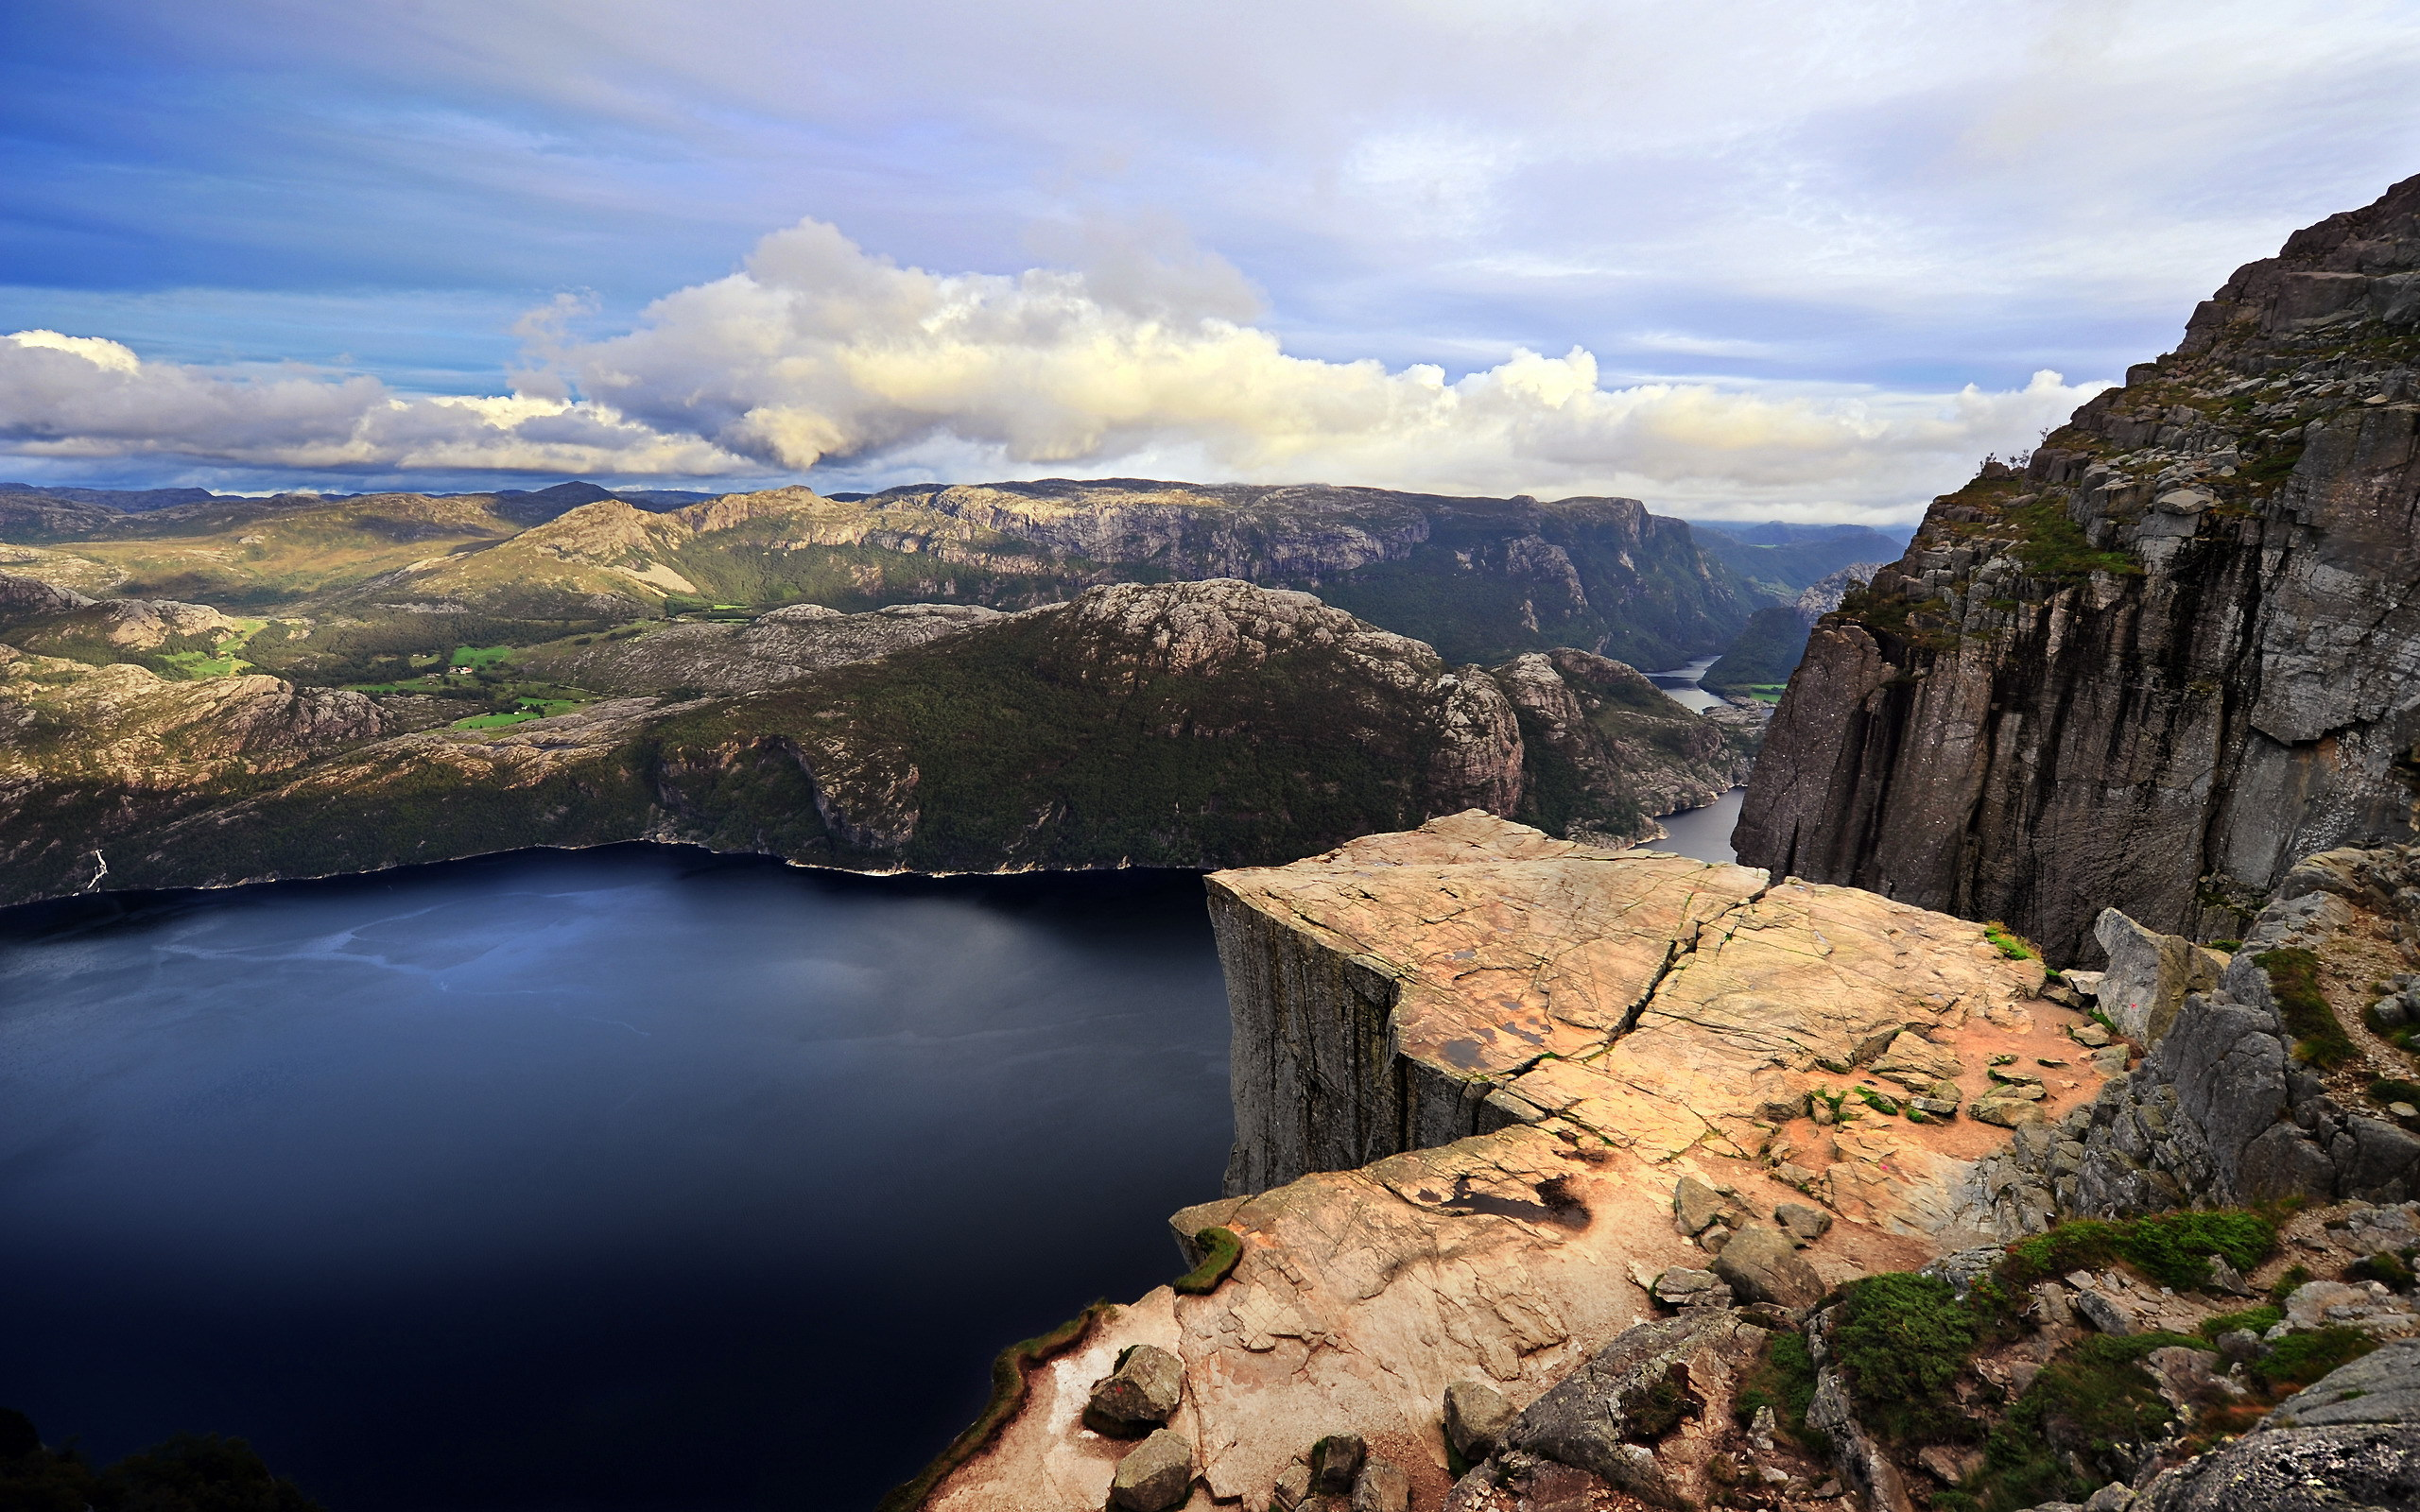 33364 download wallpaper Landscape, Rivers, Mountains screensavers and pictures for free